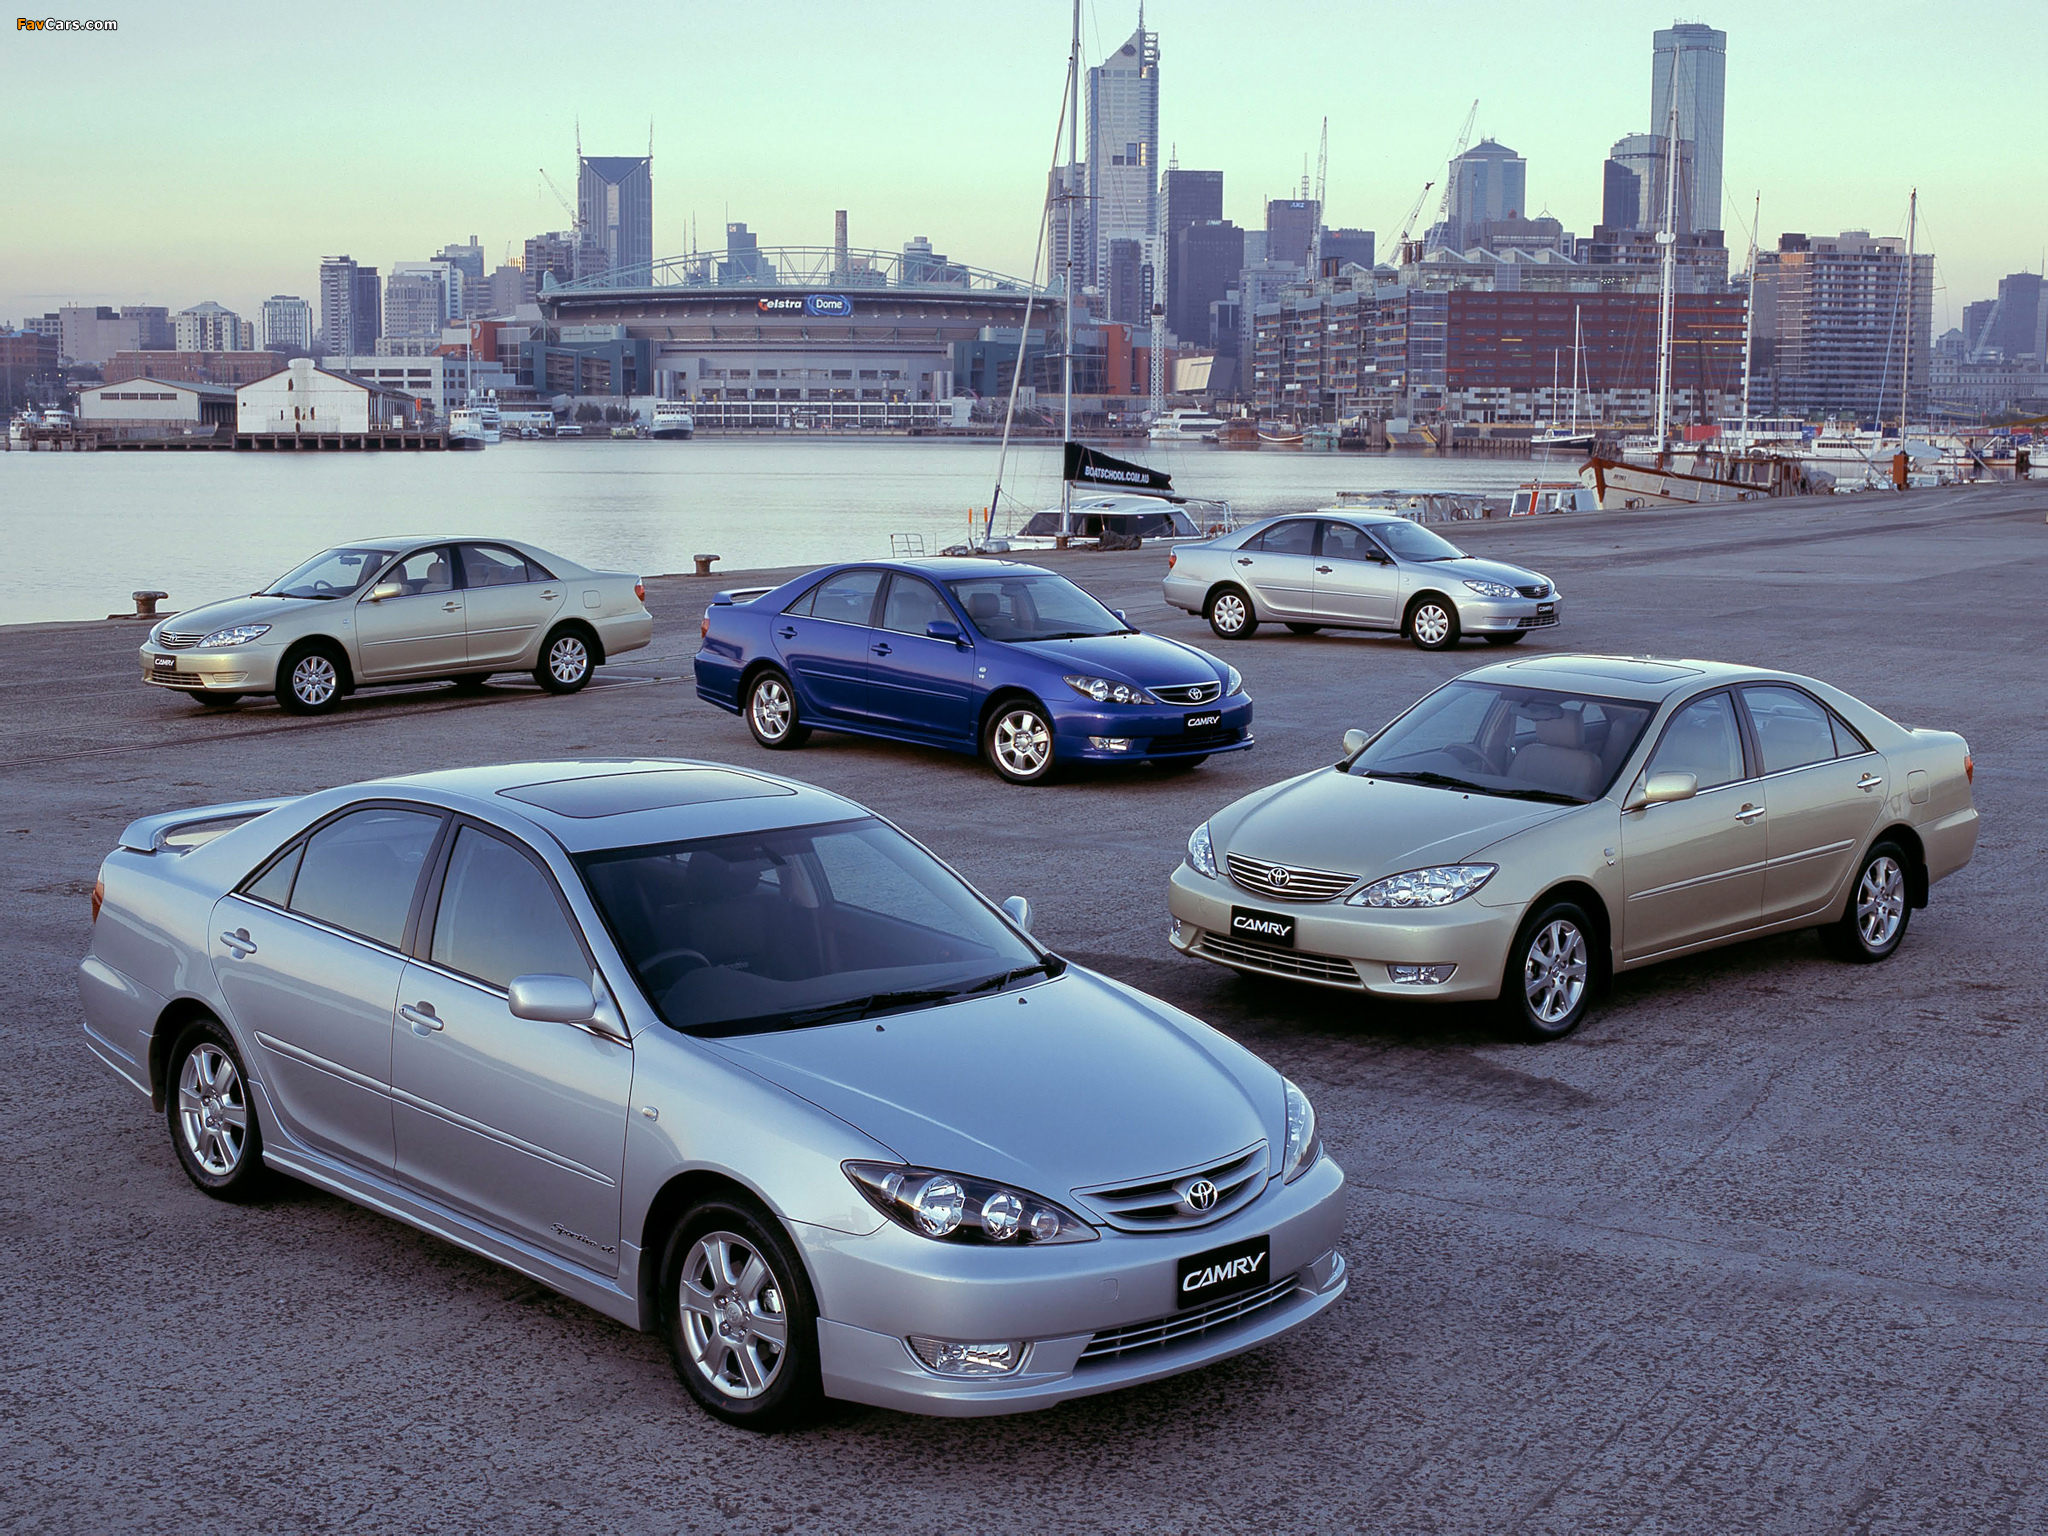 Toyota Camry wallpapers (2048 x 1536)